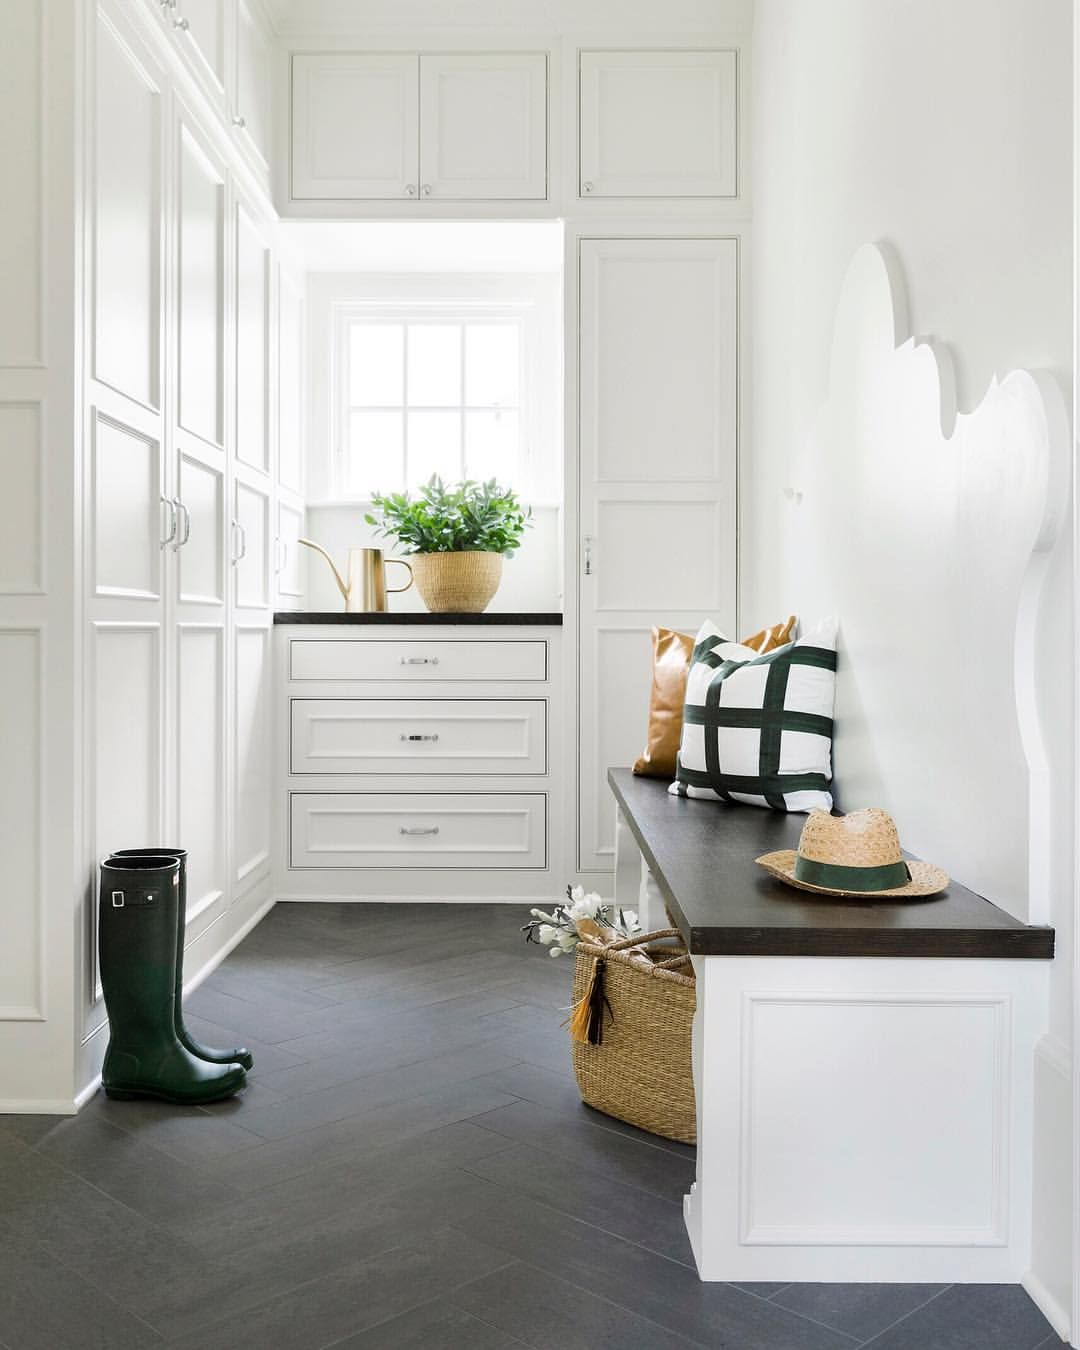 Small hallway furniture  Beautiful details in an understated spacedroom by Bria Hammel